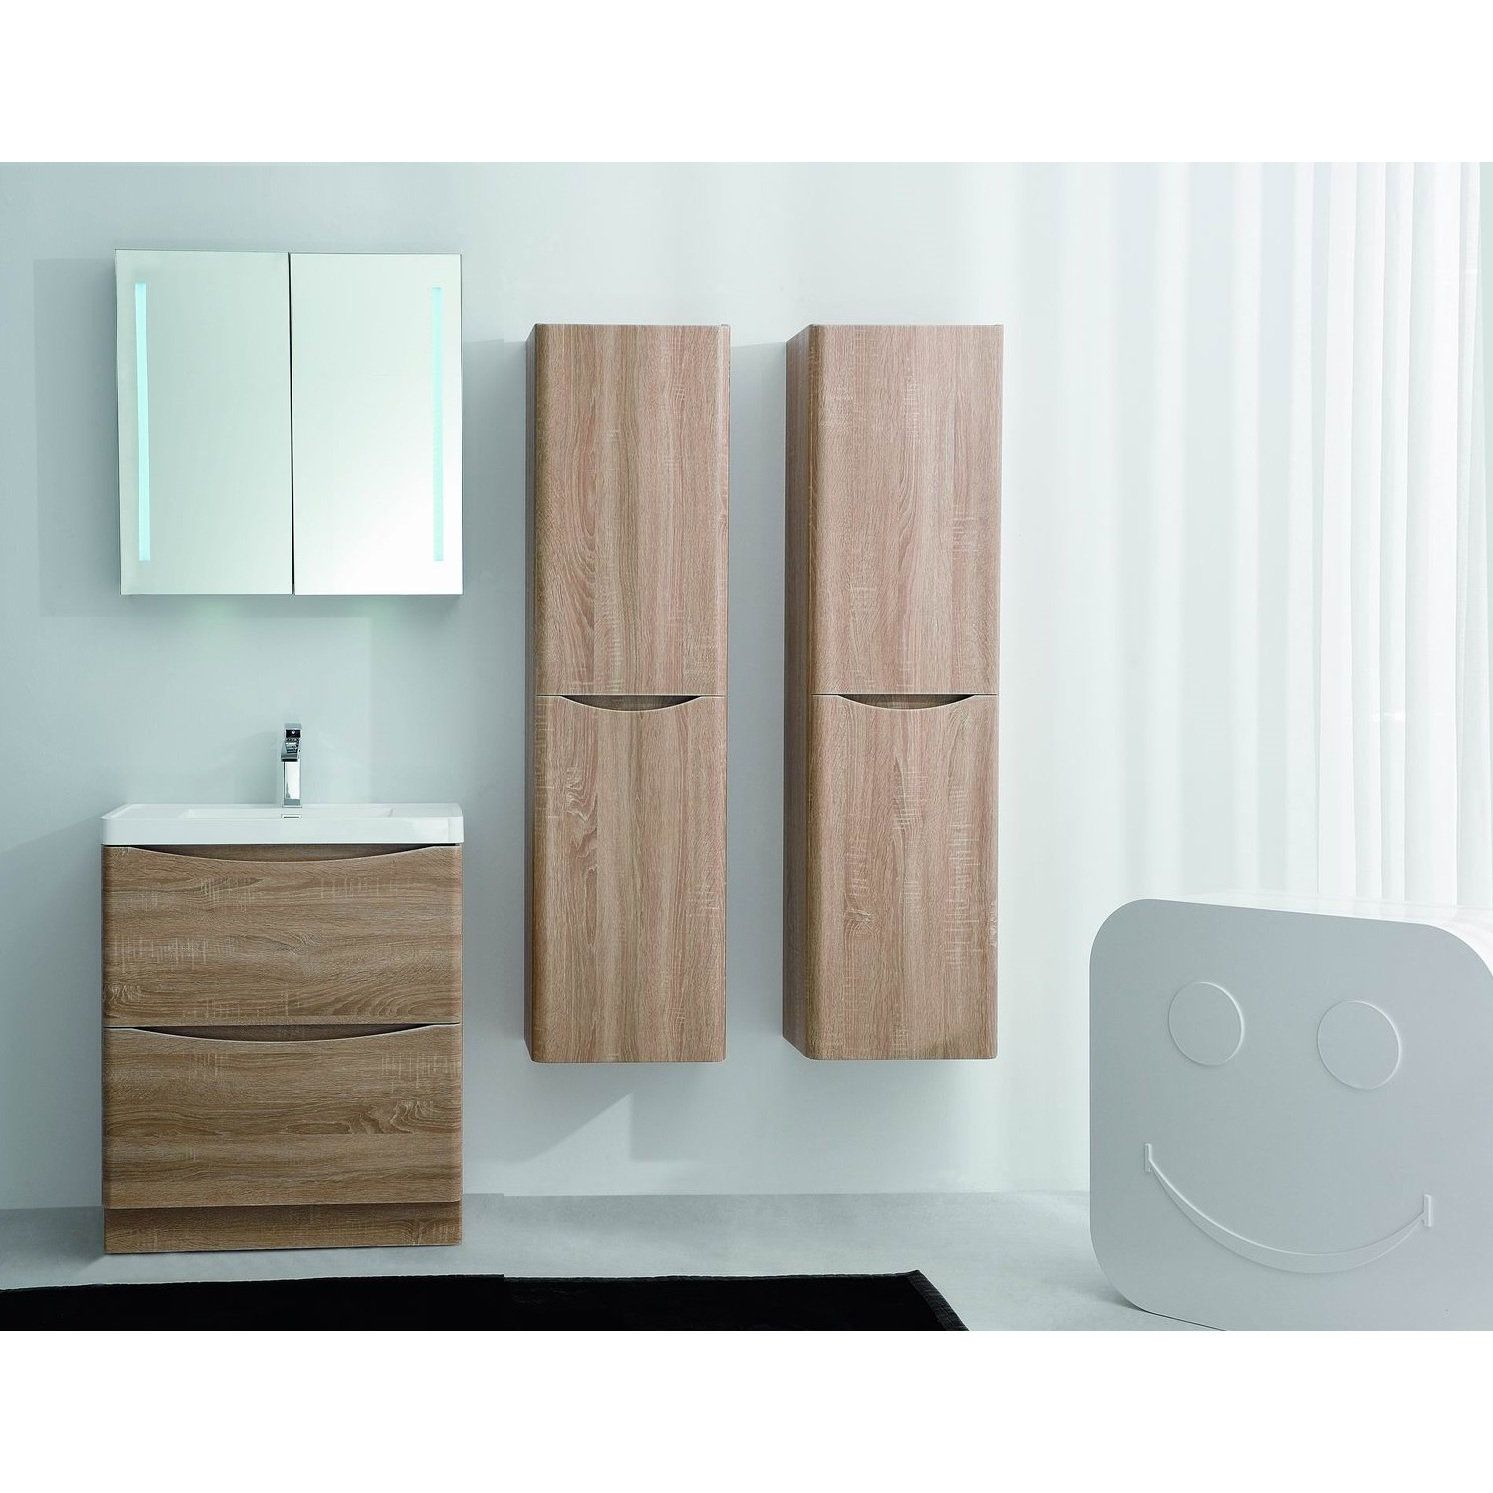 Eviva Smile 30 inch Oak Modern Bathroom Vanity Set with Integrated Acrylic  Sink Free Standing. Eviva Smile 30 inch White Oak Modern Bathroom Vanity Set with